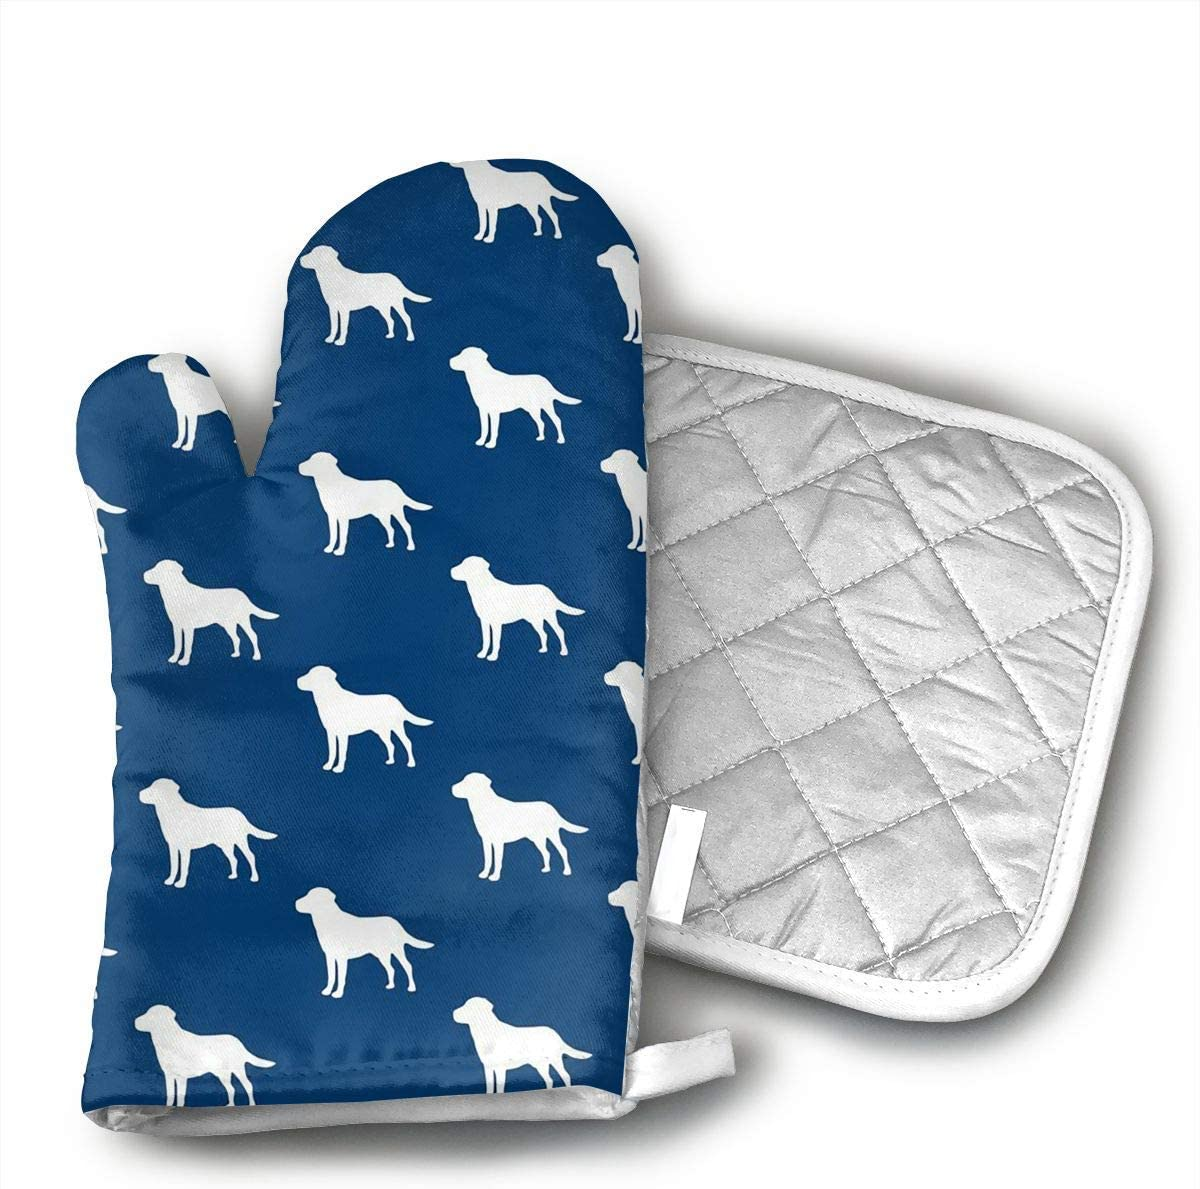 Labrador Silhouettes On Navy Oven Mitts and Pot Holders Set with Polyester Cotton Non-Slip Grip Heat Resistant Oven Gloves for BBQ Cooking Baking Grilling